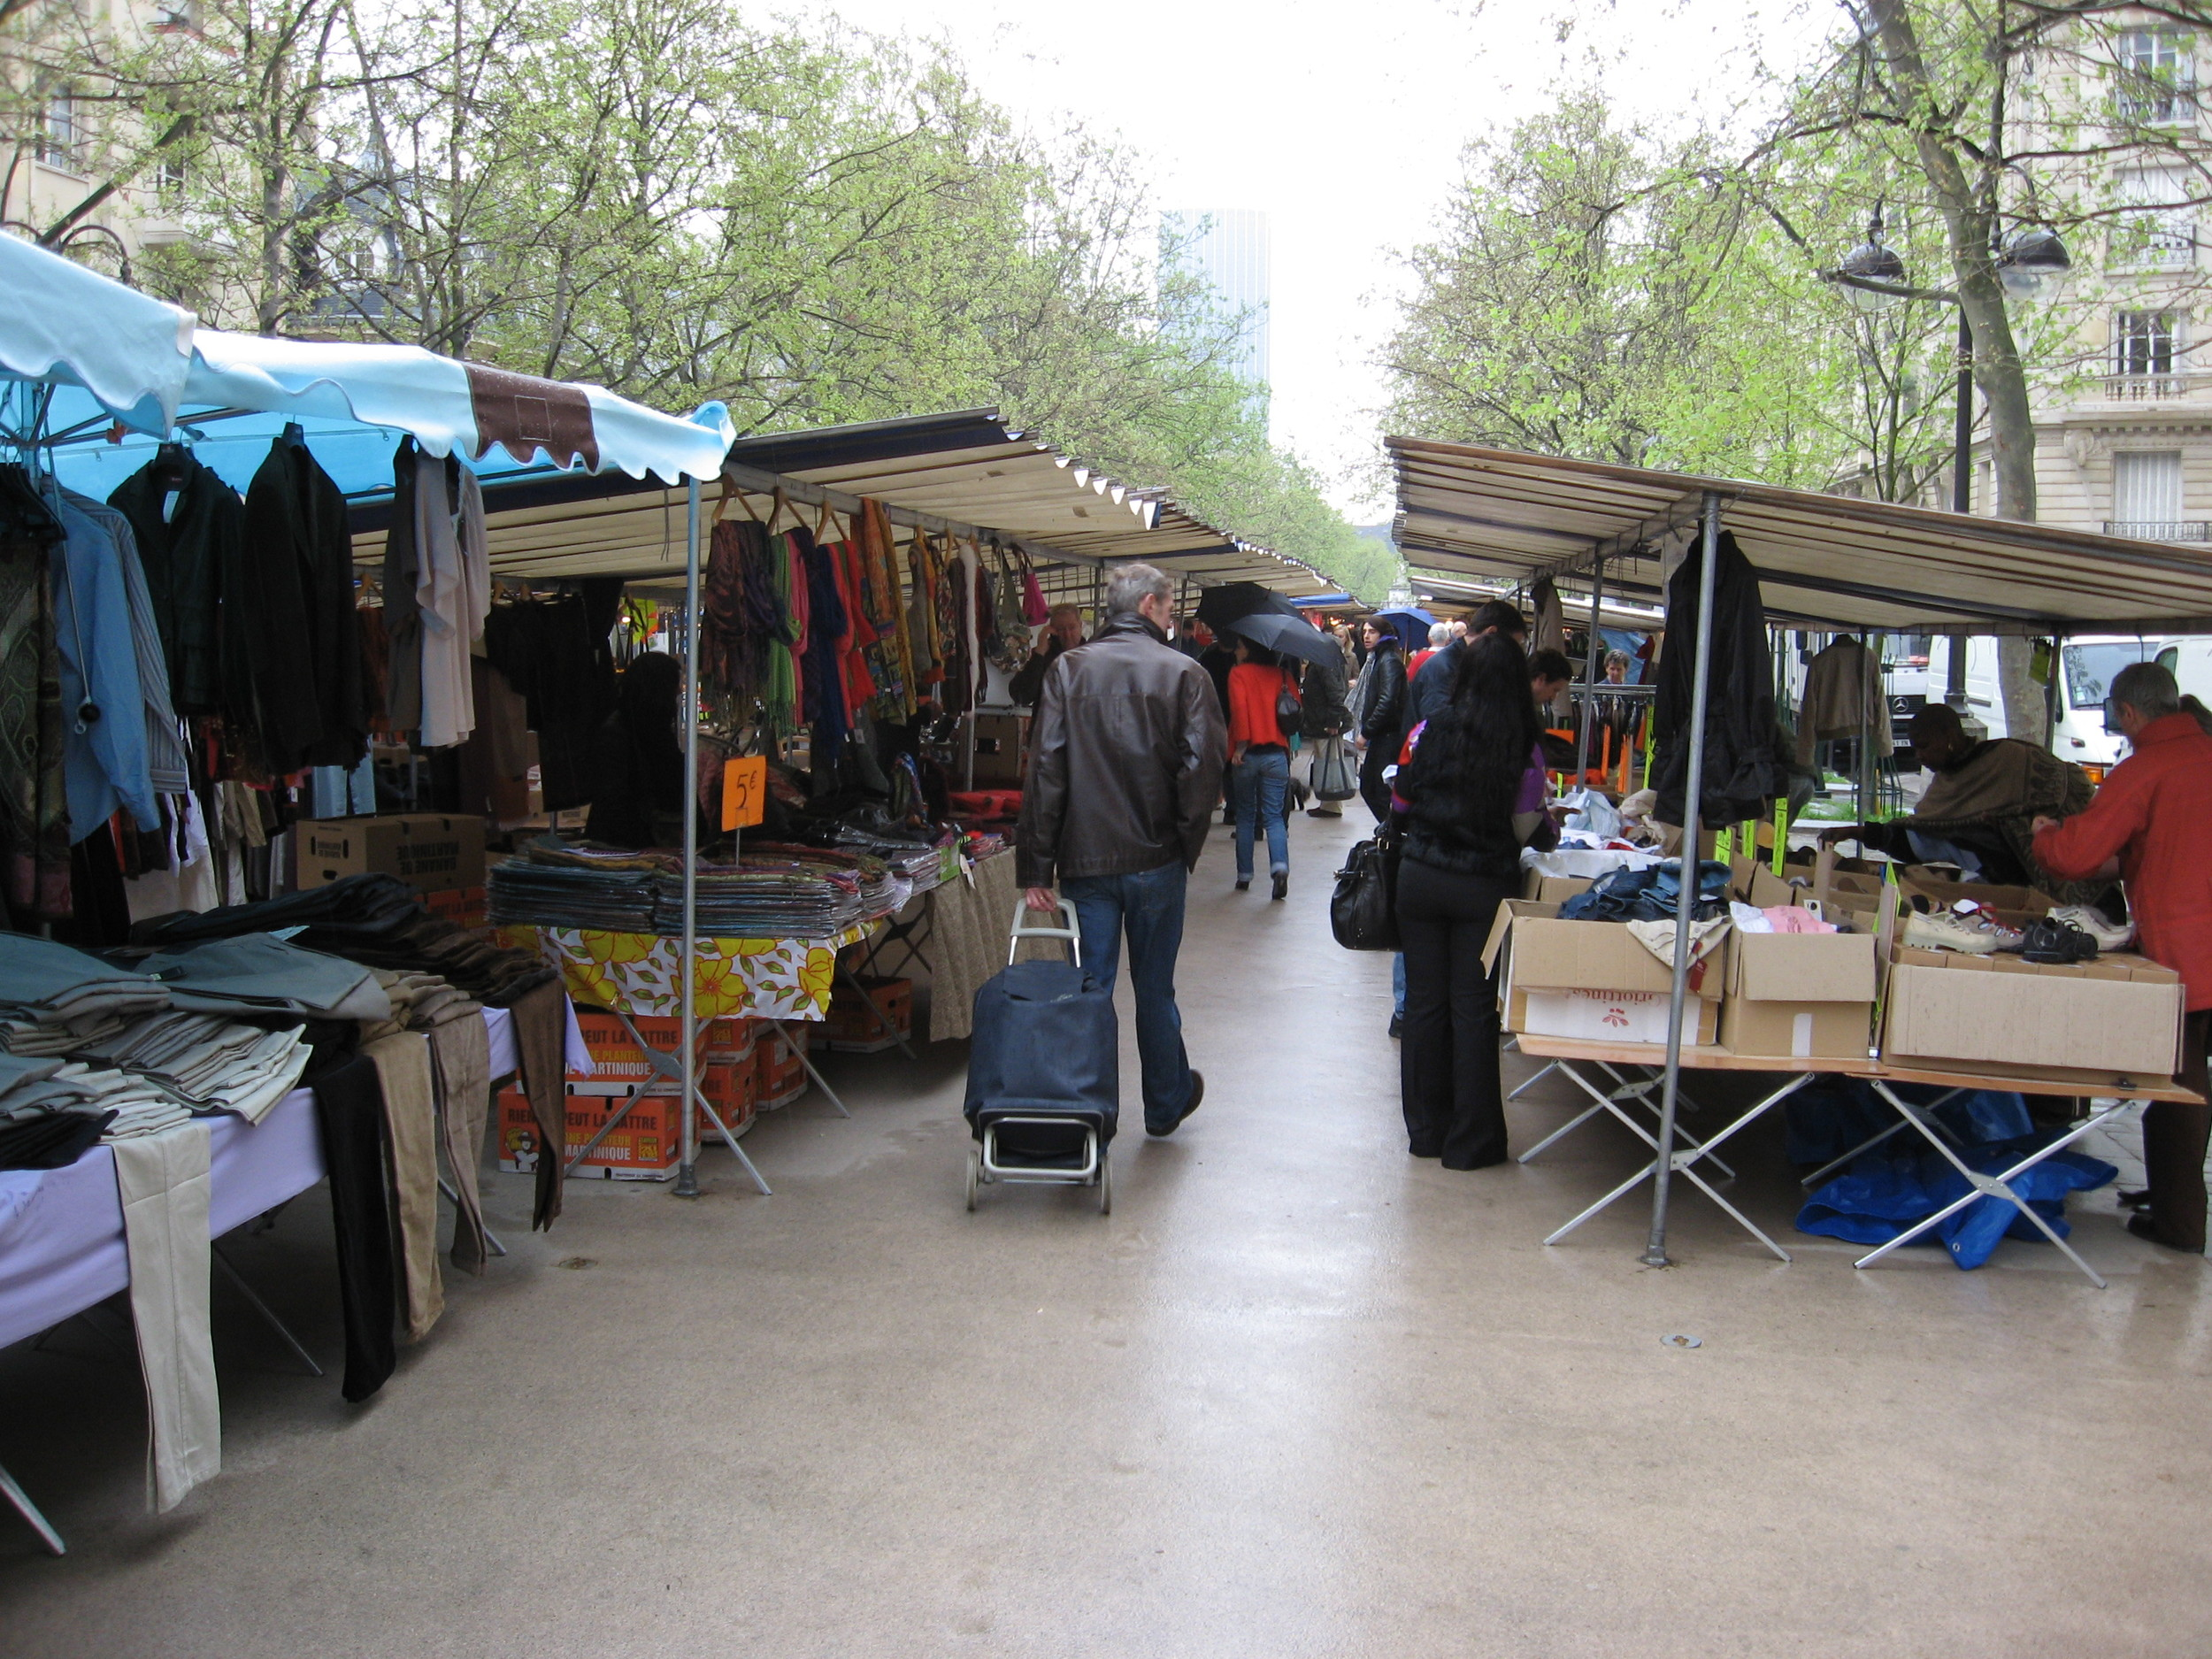 We love street markets. Paris has markets everyday in different locations, so we had is all mapped out so that everyday started with a market. From there we just let things happen.